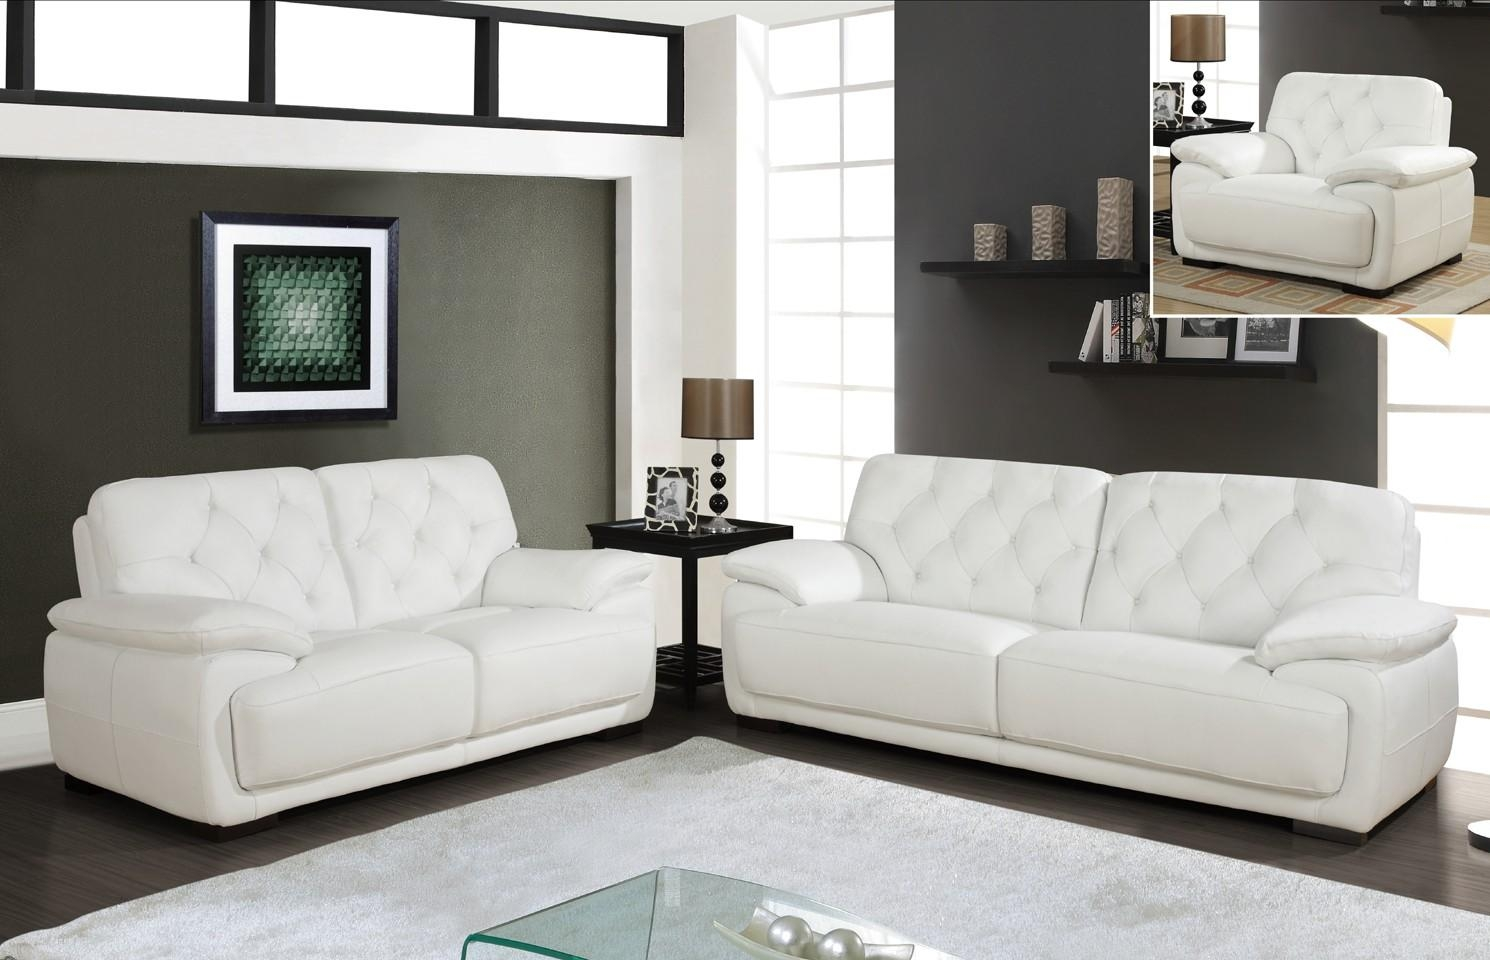 Sofas Center : Maxresdefault Leather Whitea Amazing Images Intended For Off White Leather Sofa And Loveseat (Image 18 of 20)